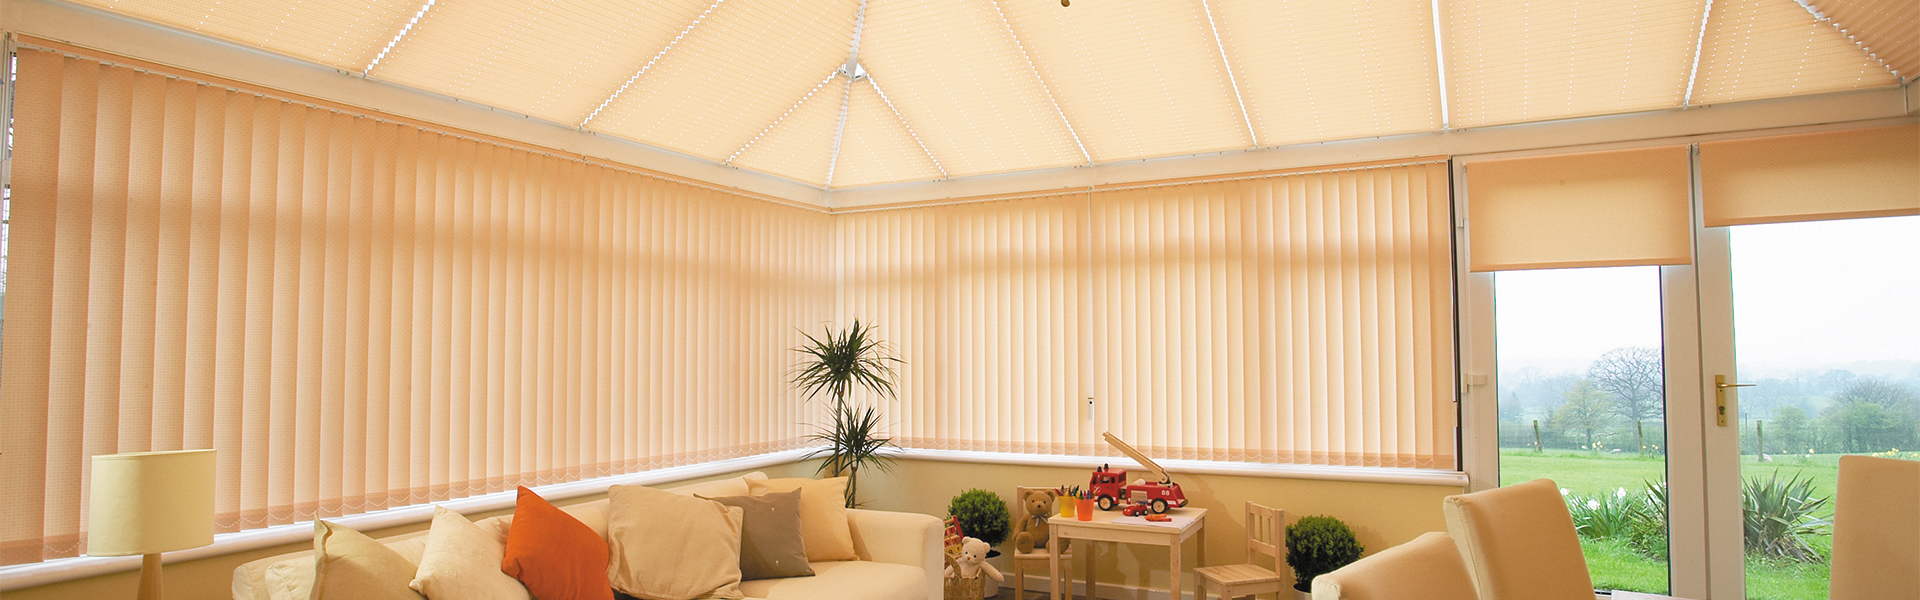 conservatory-blinds-hero-1